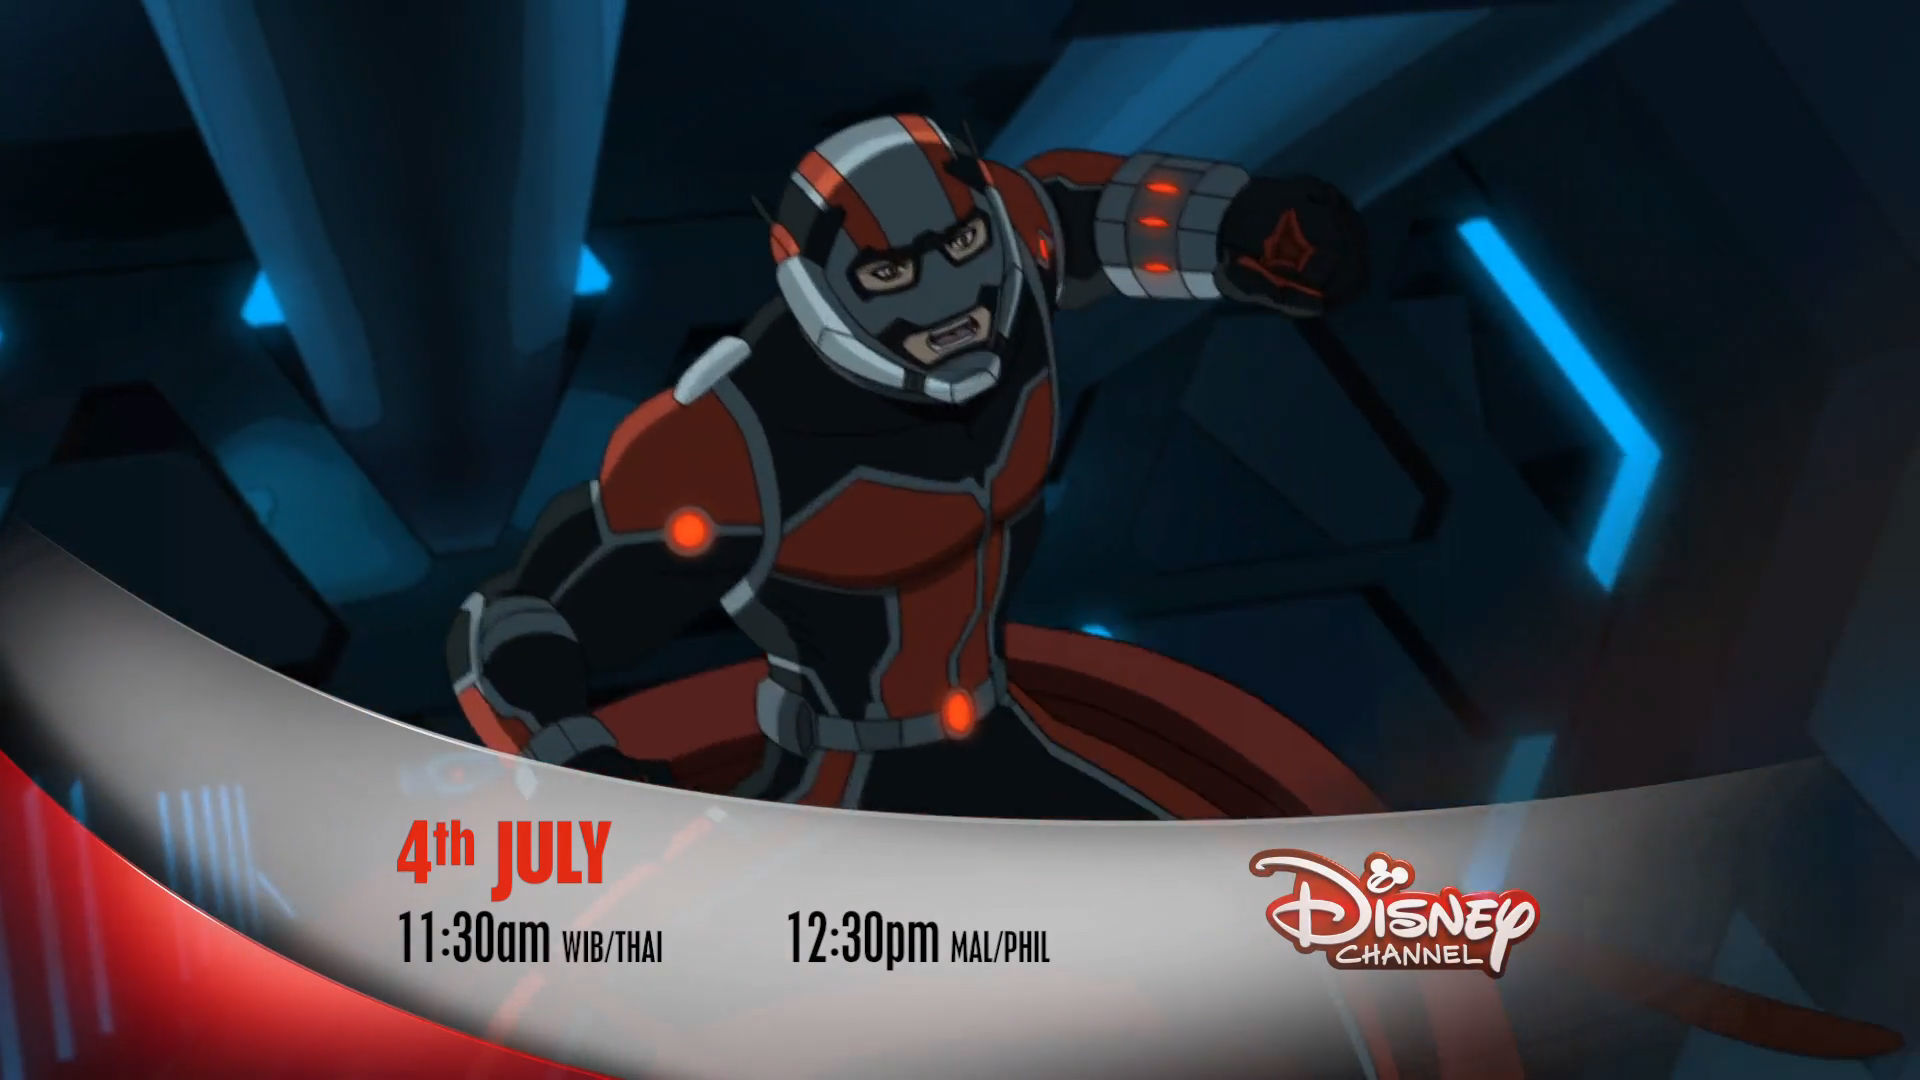 Marvel Super Hero Mania on Disney Channel